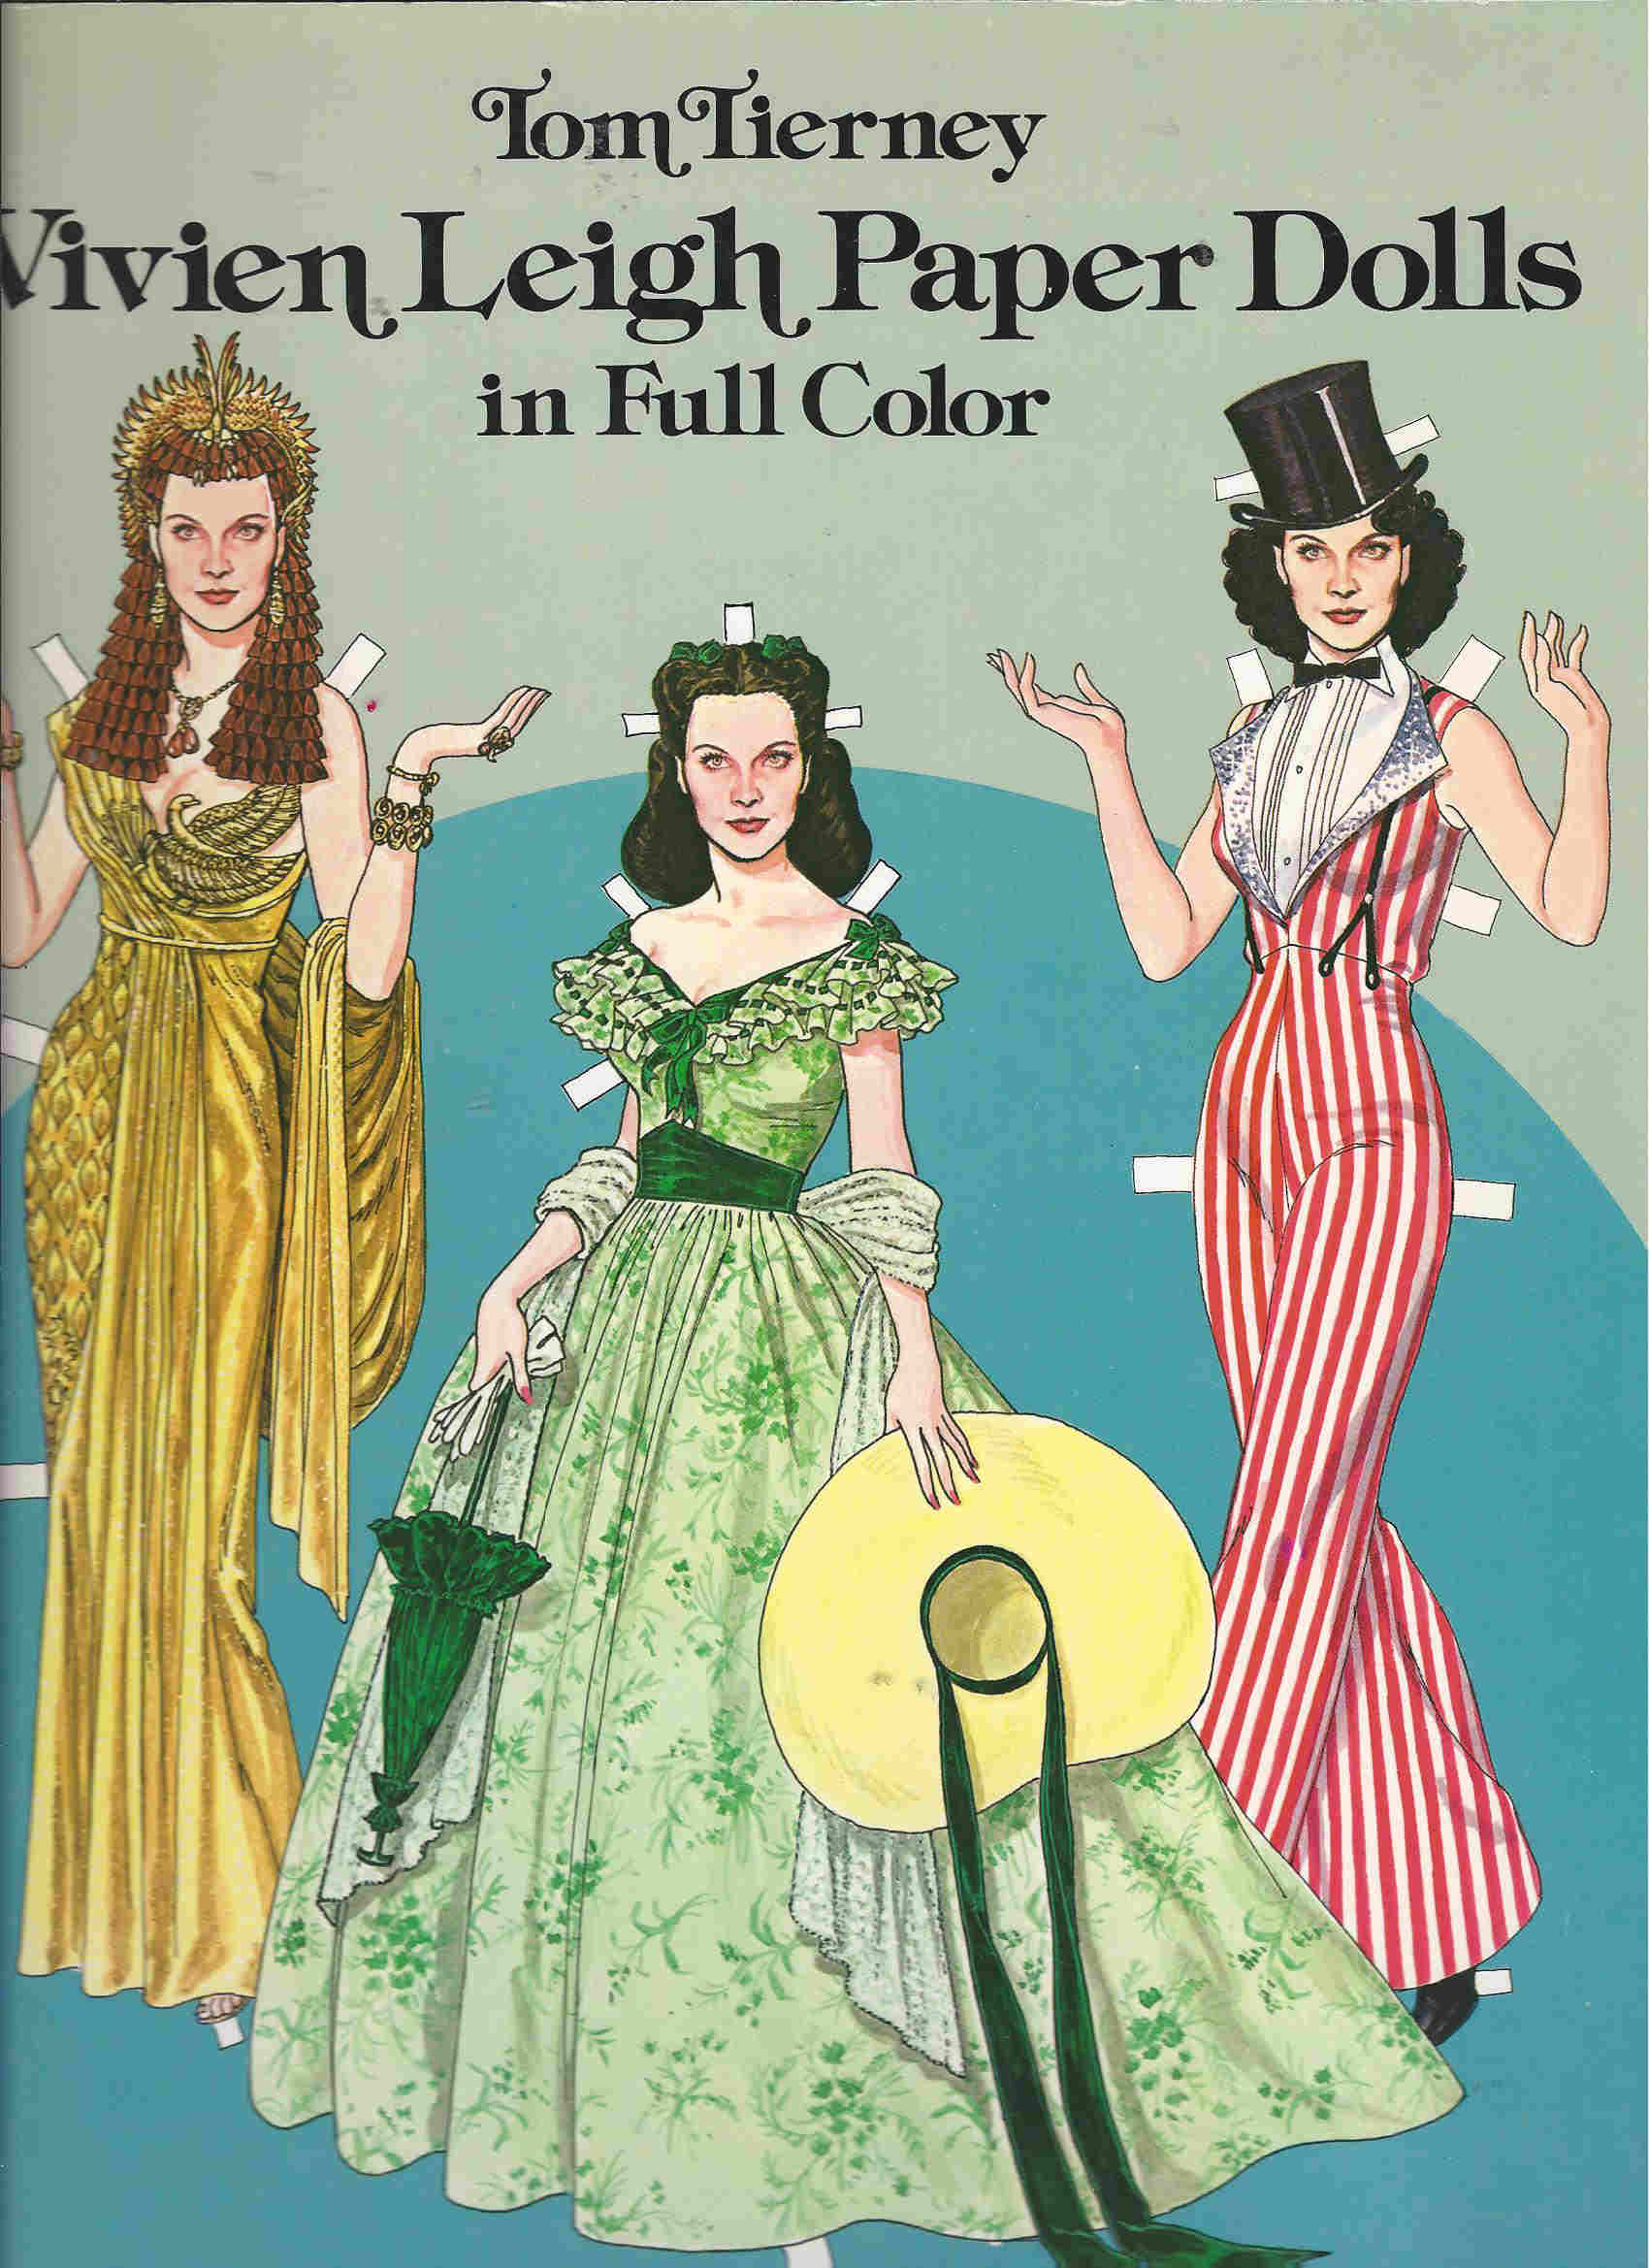 tom tierney vivien leigh paper dolls